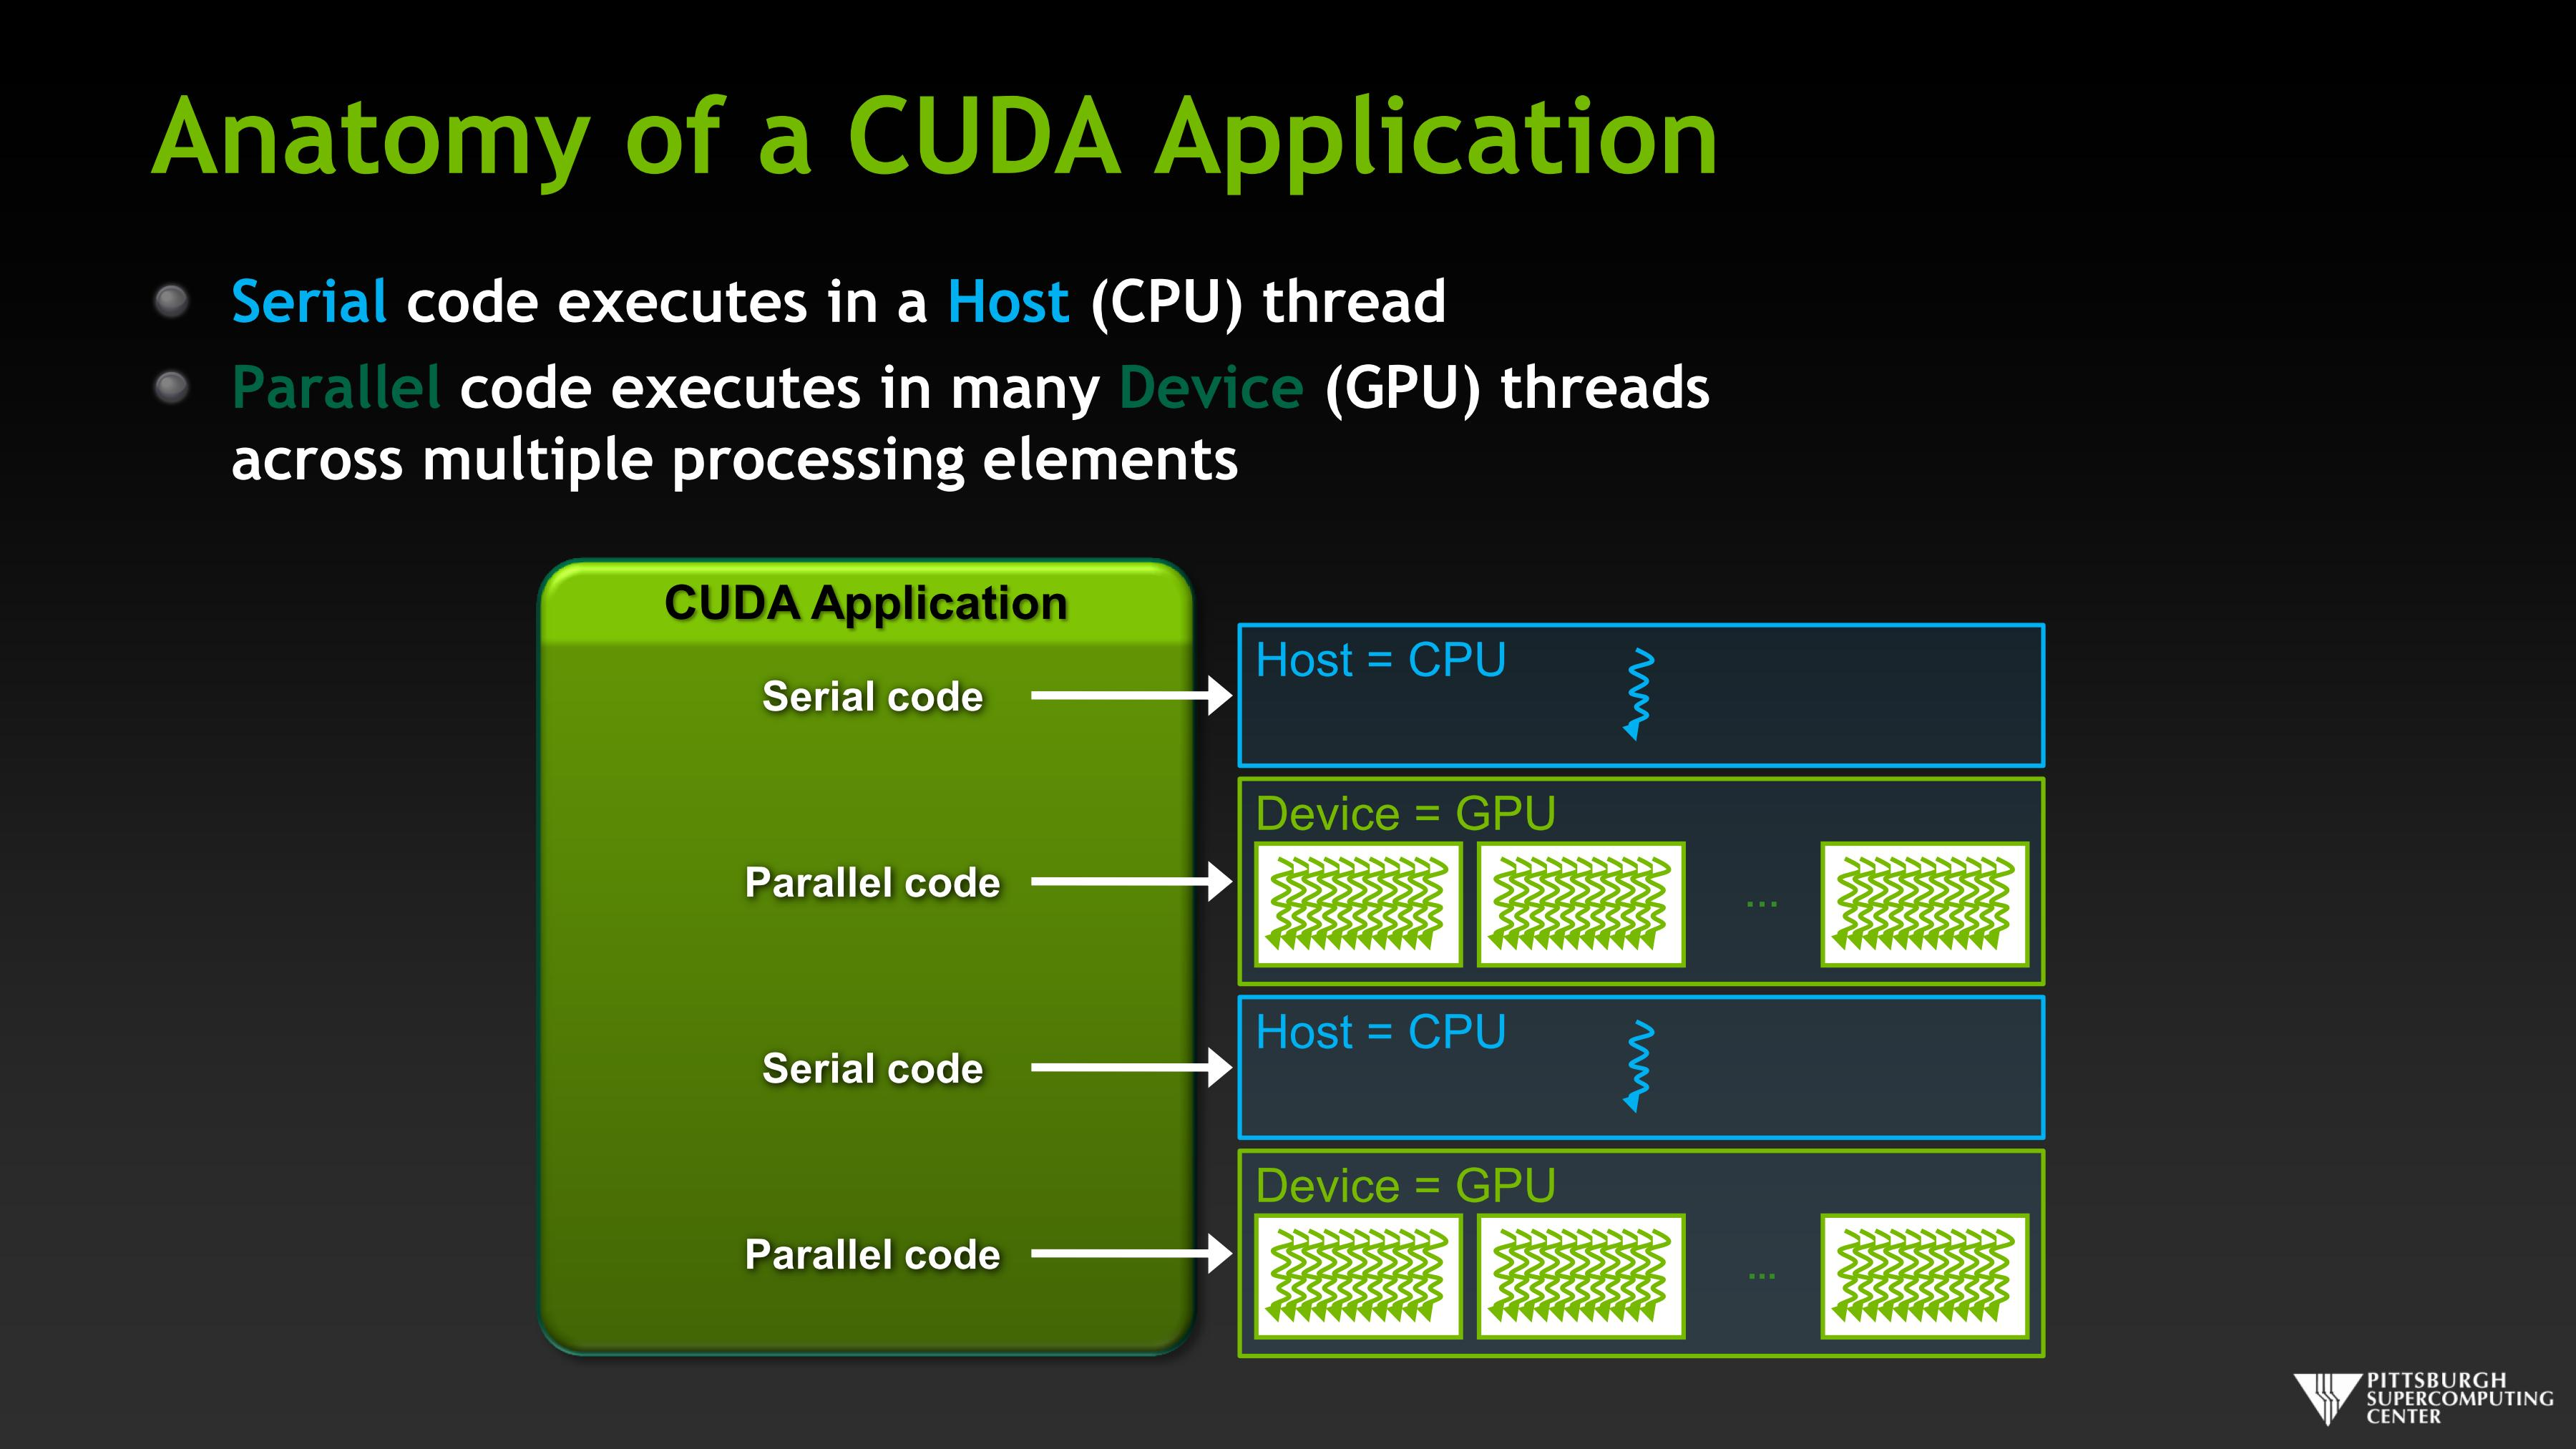 Anatomy of a CUDA Application